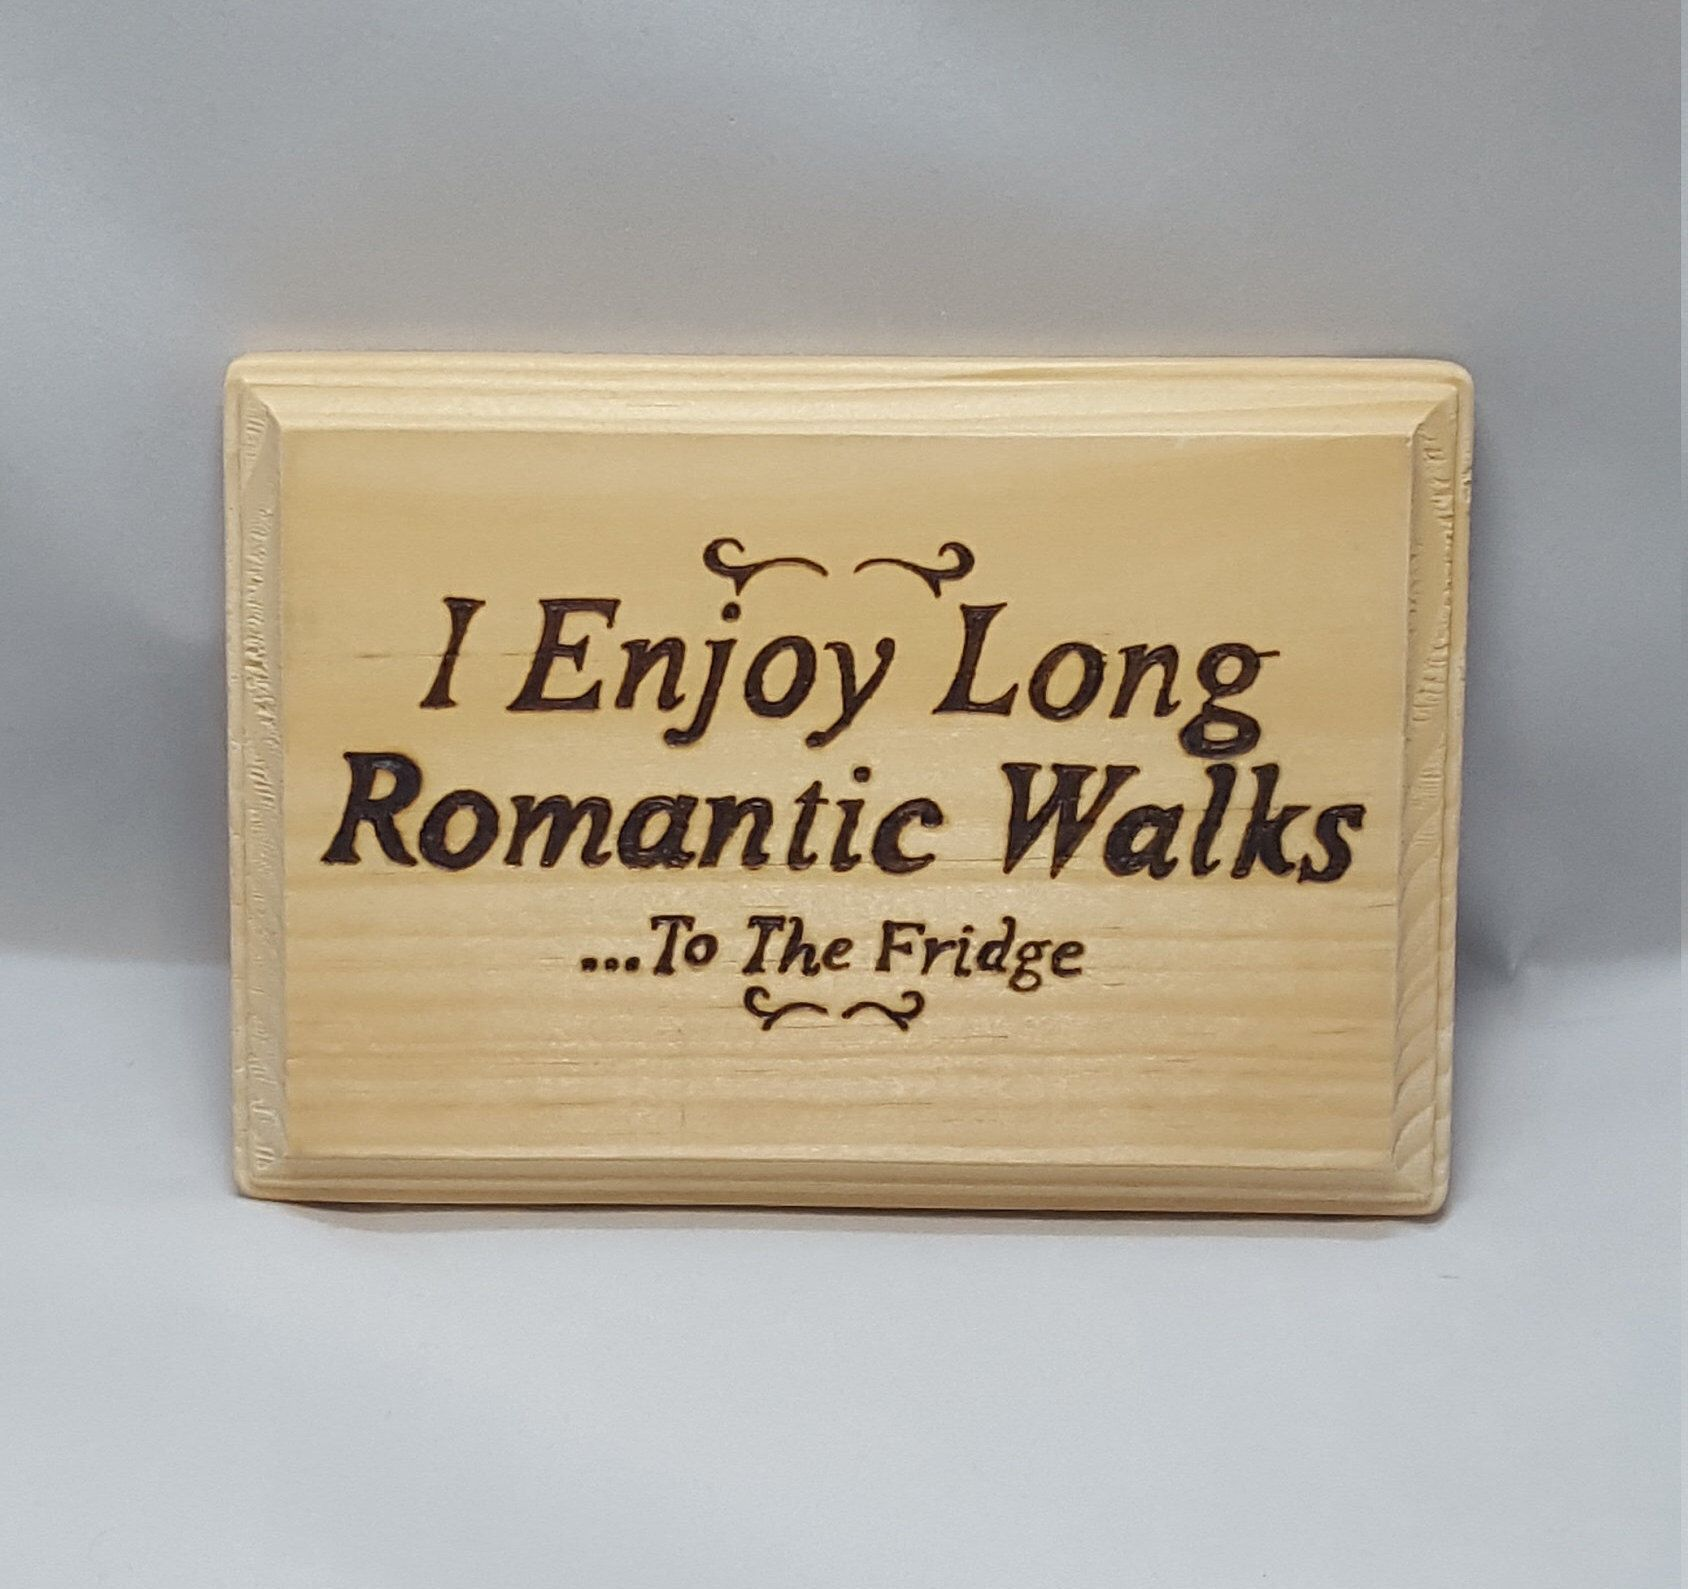 Romantic Walks Funny Saying Wall Plaque Humor Sign Wall Etsy Funny Quotes Funny Signs Wooden Signs With Sayings